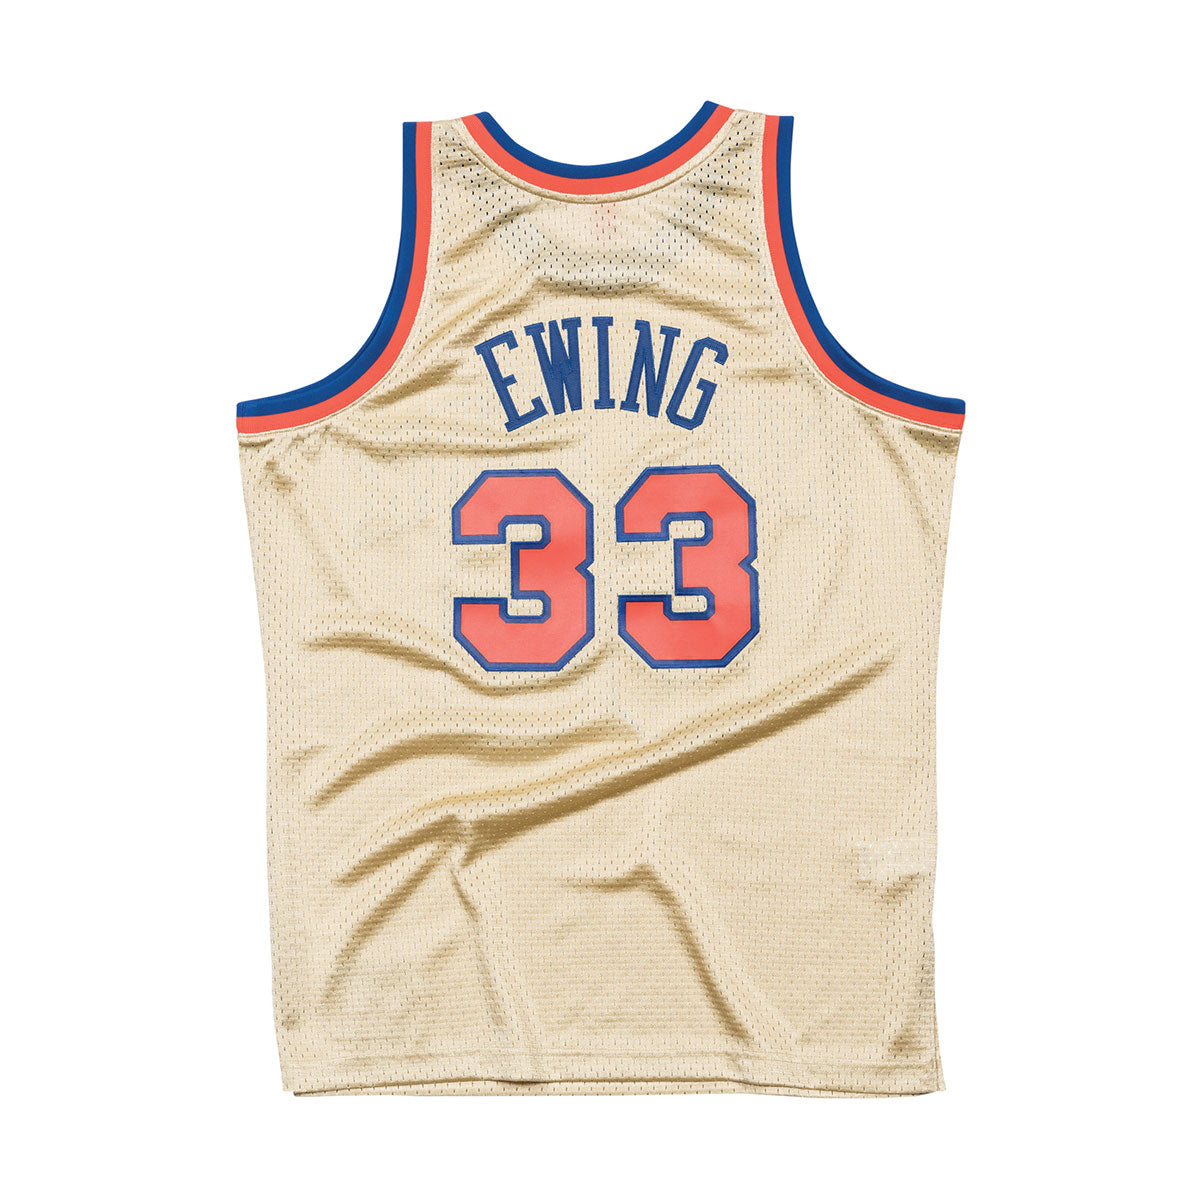 pretty nice 07203 c1061 get new york knicks ewing jersey 108ea a4a70